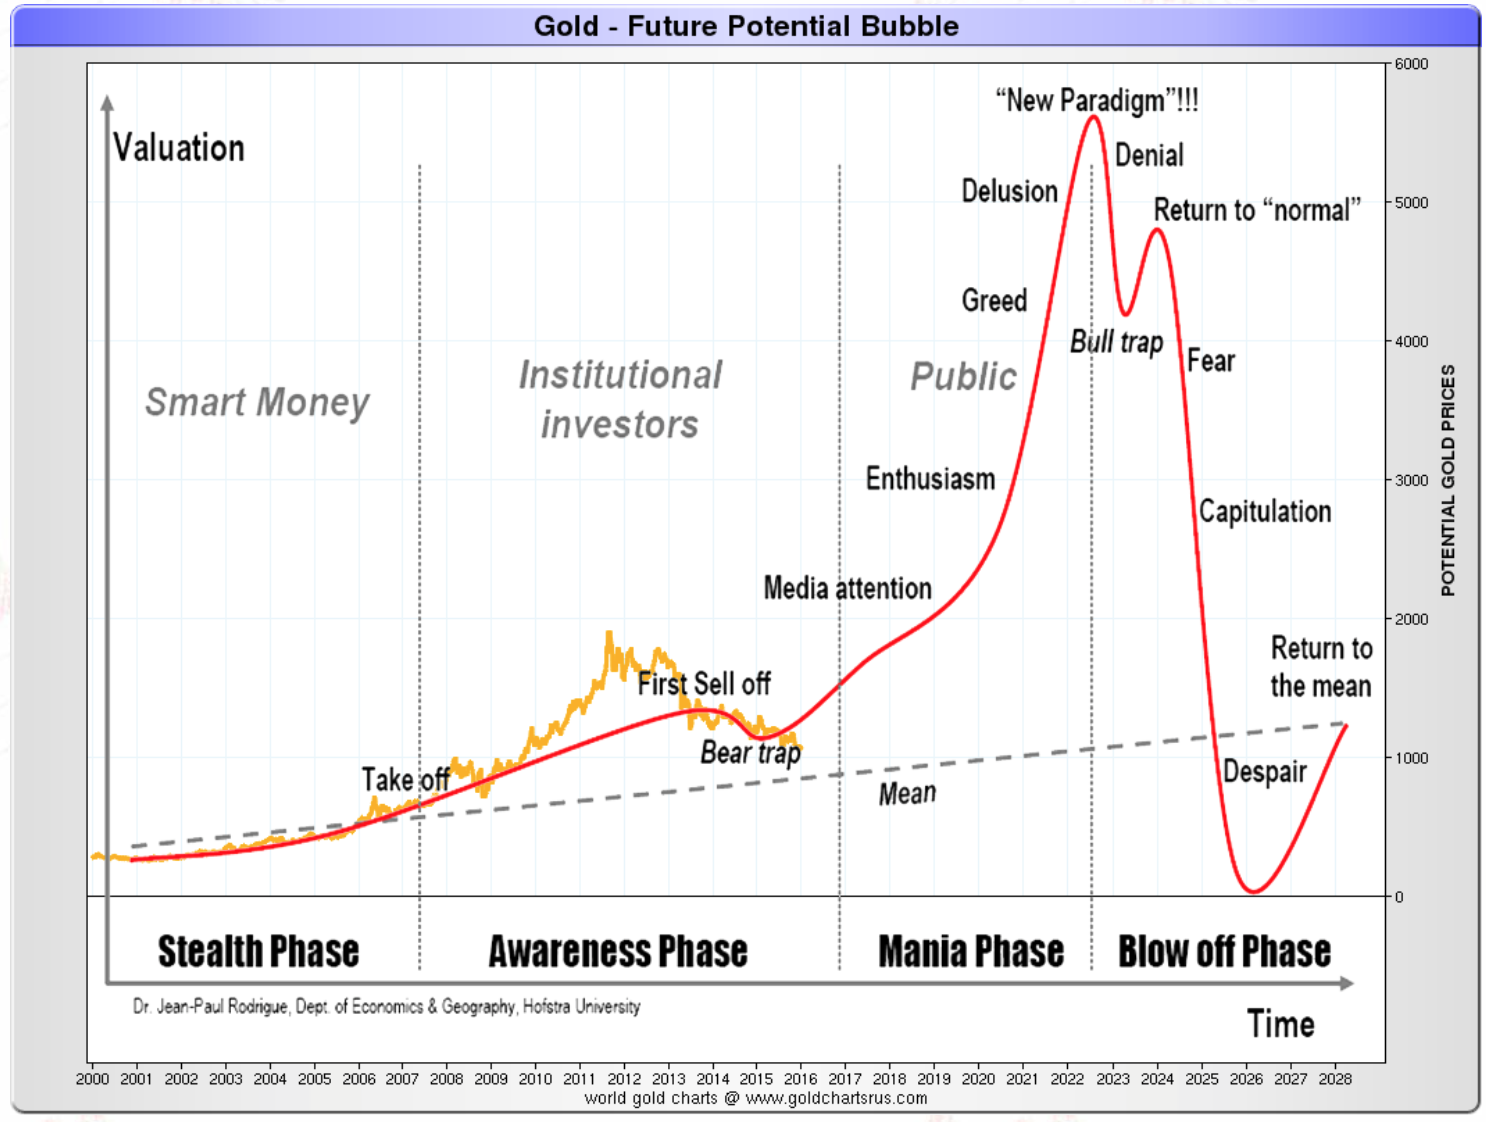 Gold - Future potential bubble